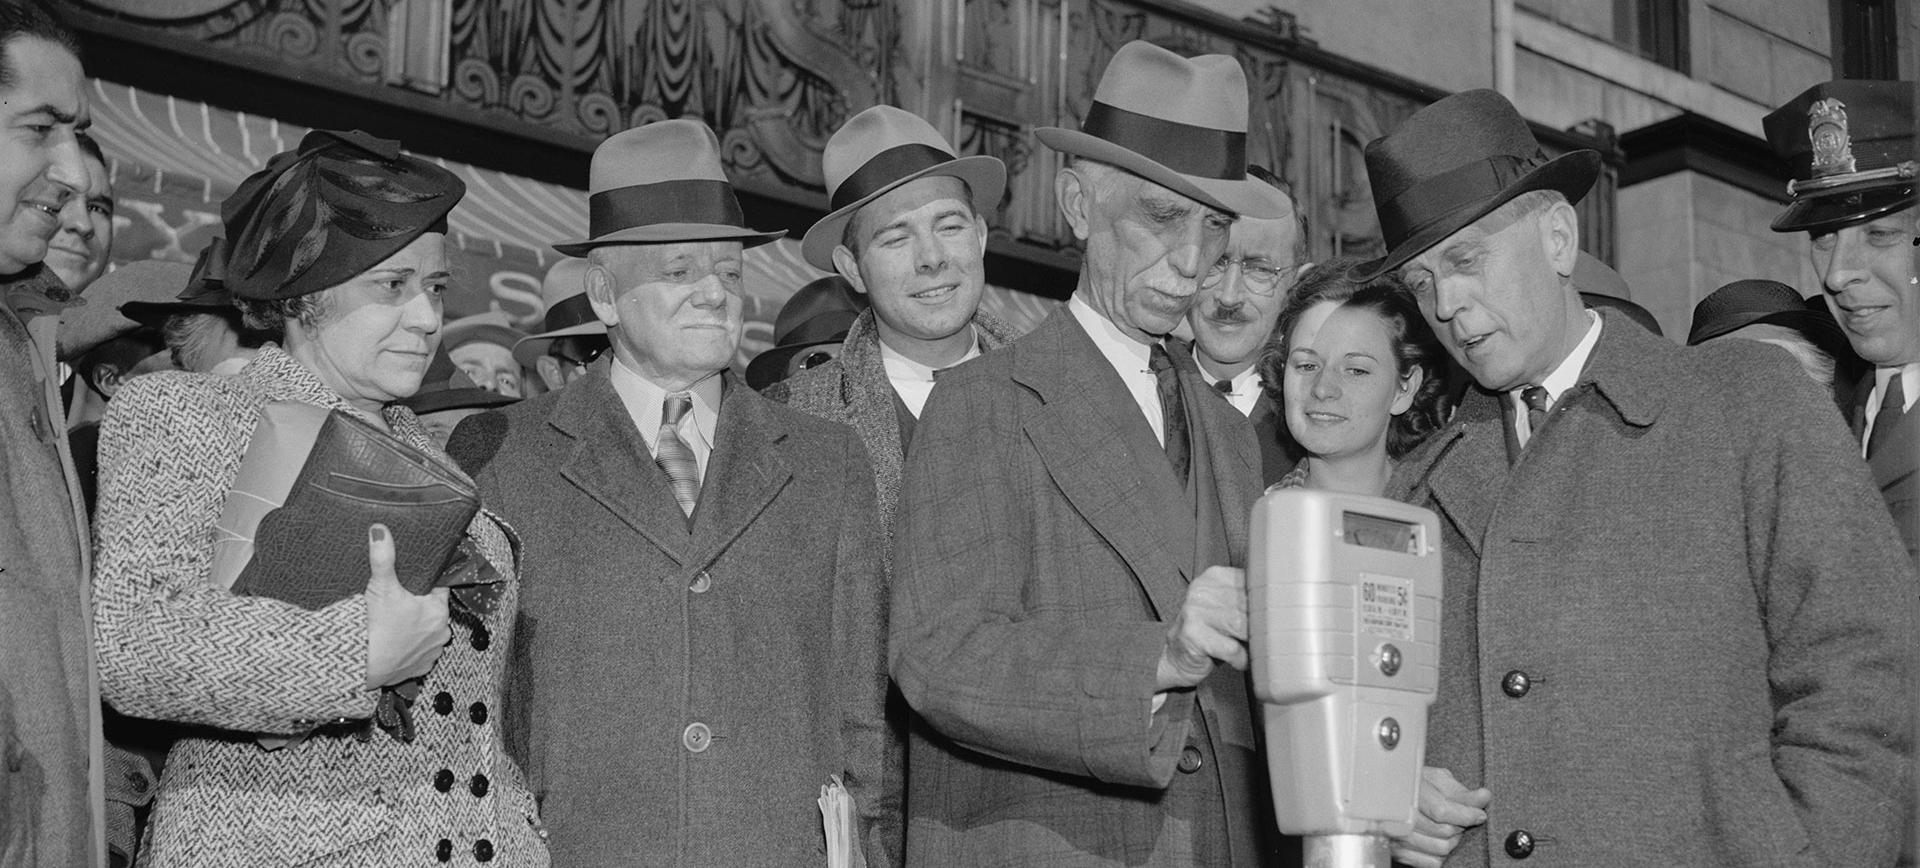 Commissioner Melvin Hazen and William Van Duzer put the first nickel in the parking meters ordered by Congress for a test in Washington, November 14, 1938. (Source: Library of Congress)